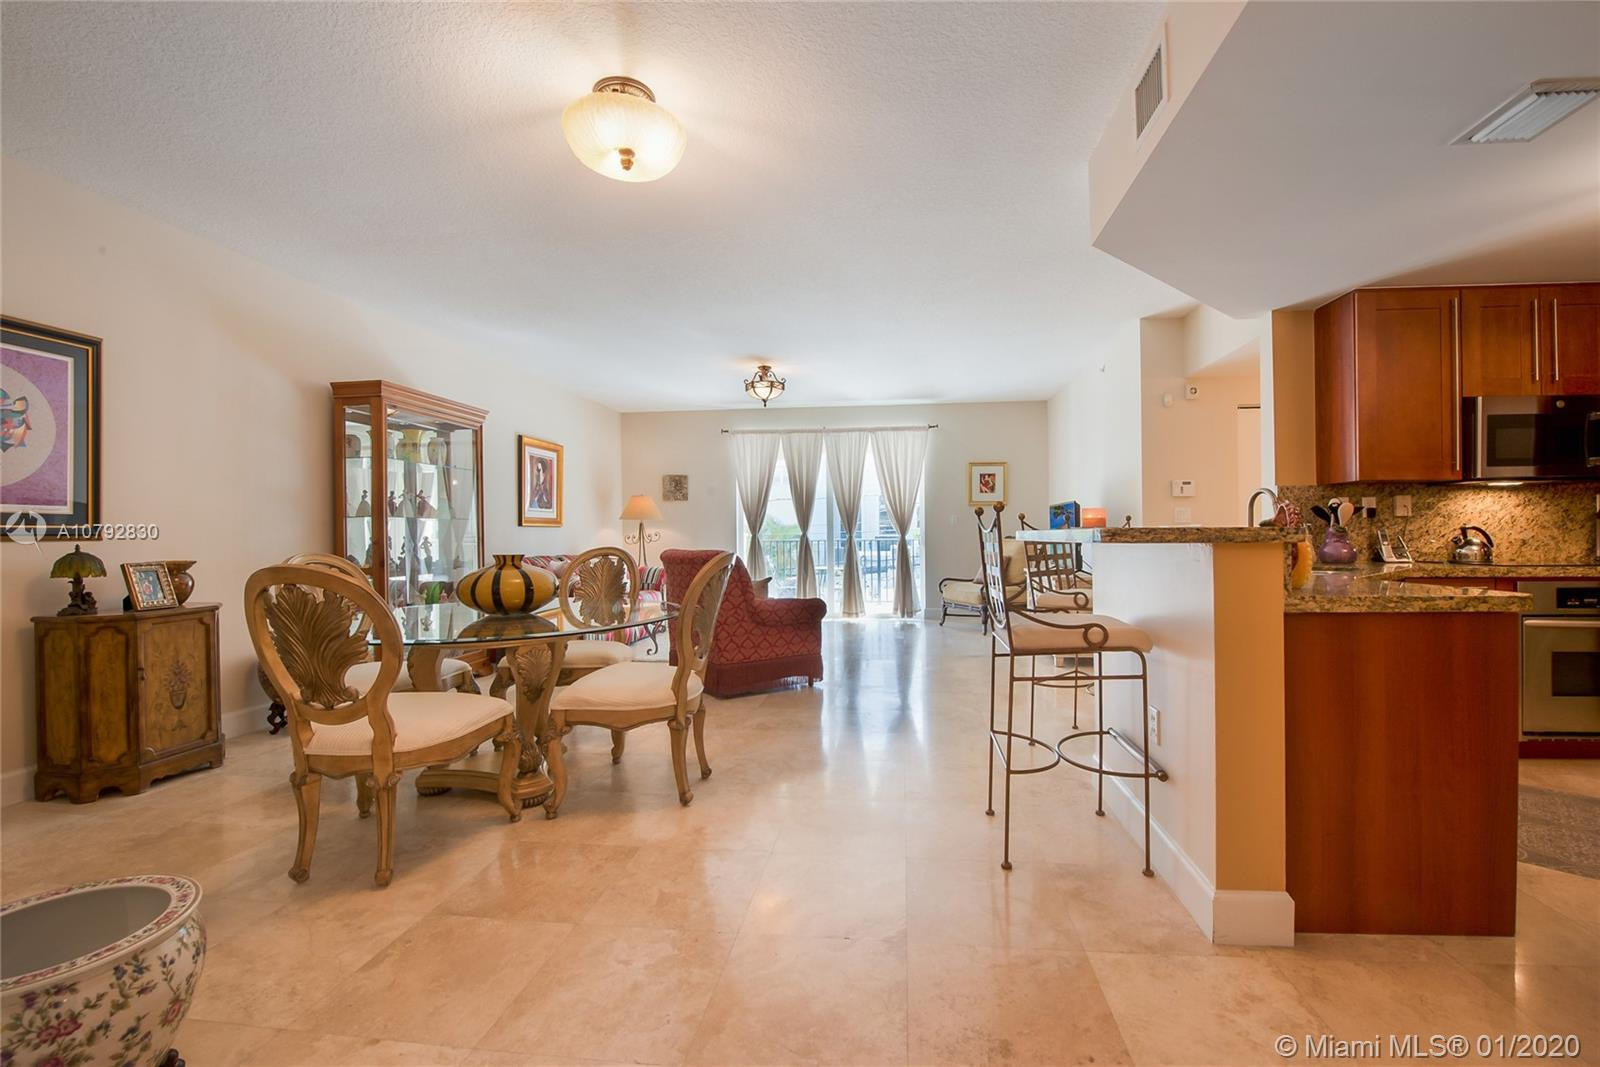 Luxurious & very spacious (1489 SF) 2/2 corner unit in a boutique building in the heart of Coral Gab